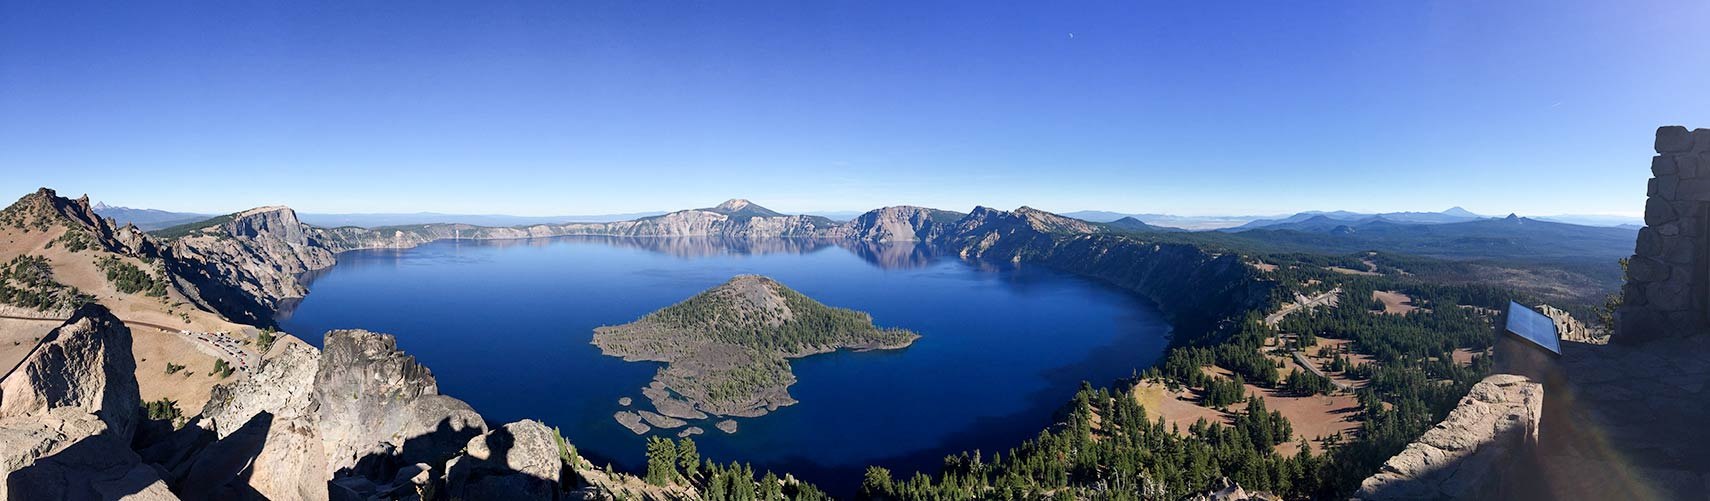 Crater Lake Oregon seen from Watchman Overlook